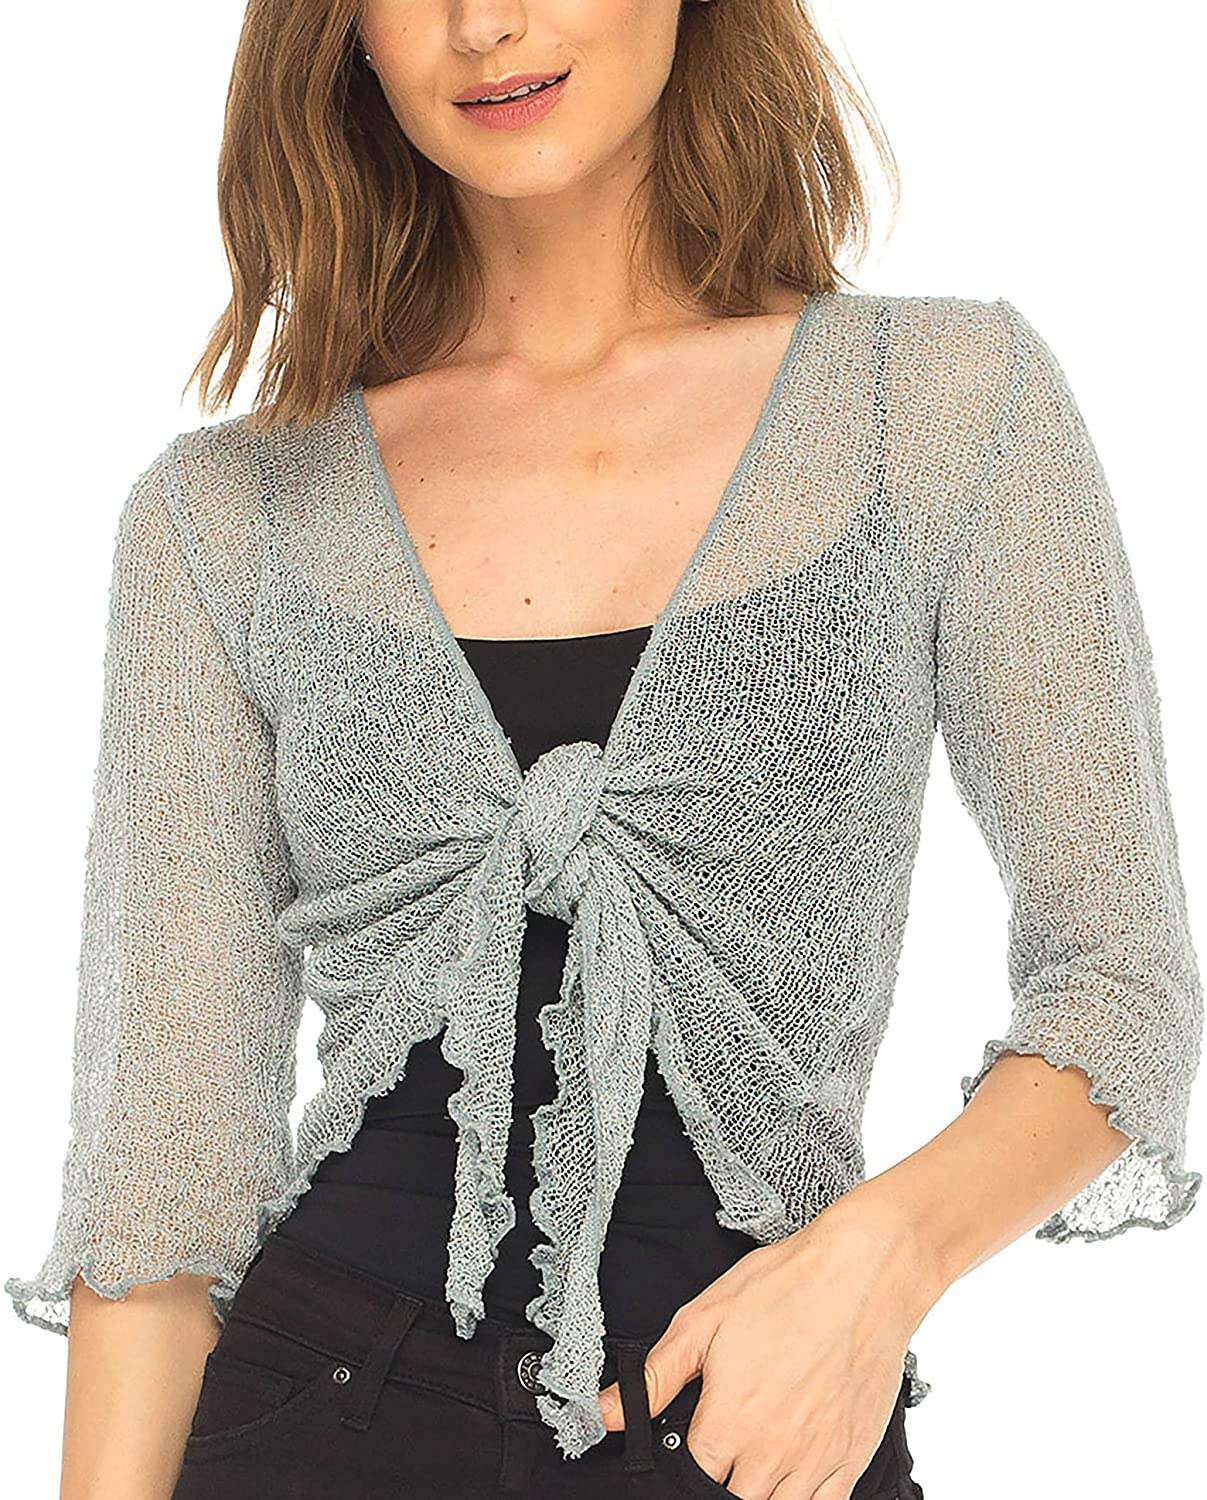 SHU-SHI Womens Sheer Shrug Tie Top Open Front Cardigan Lightweight Knit